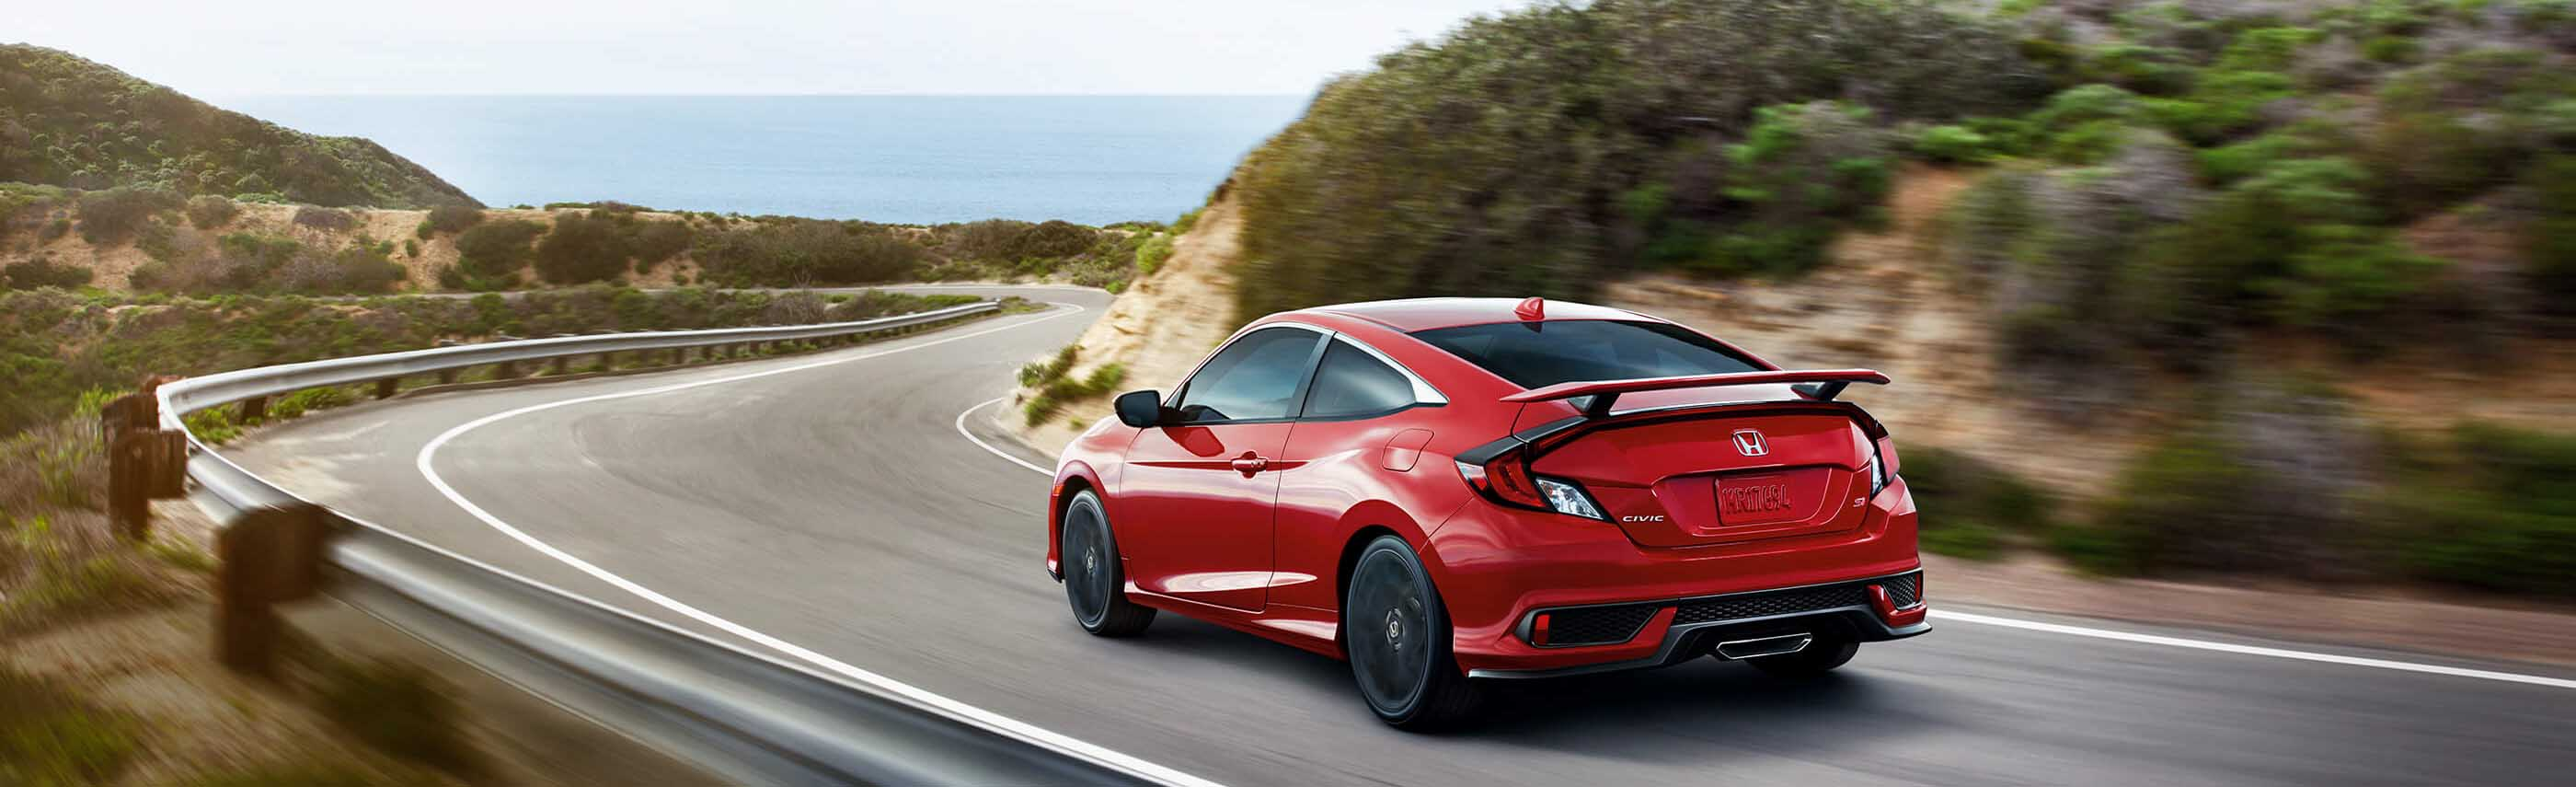 Snag A 2020 Civic Si Coupe From Our Corpus Christi, Texas, Honda Dealer